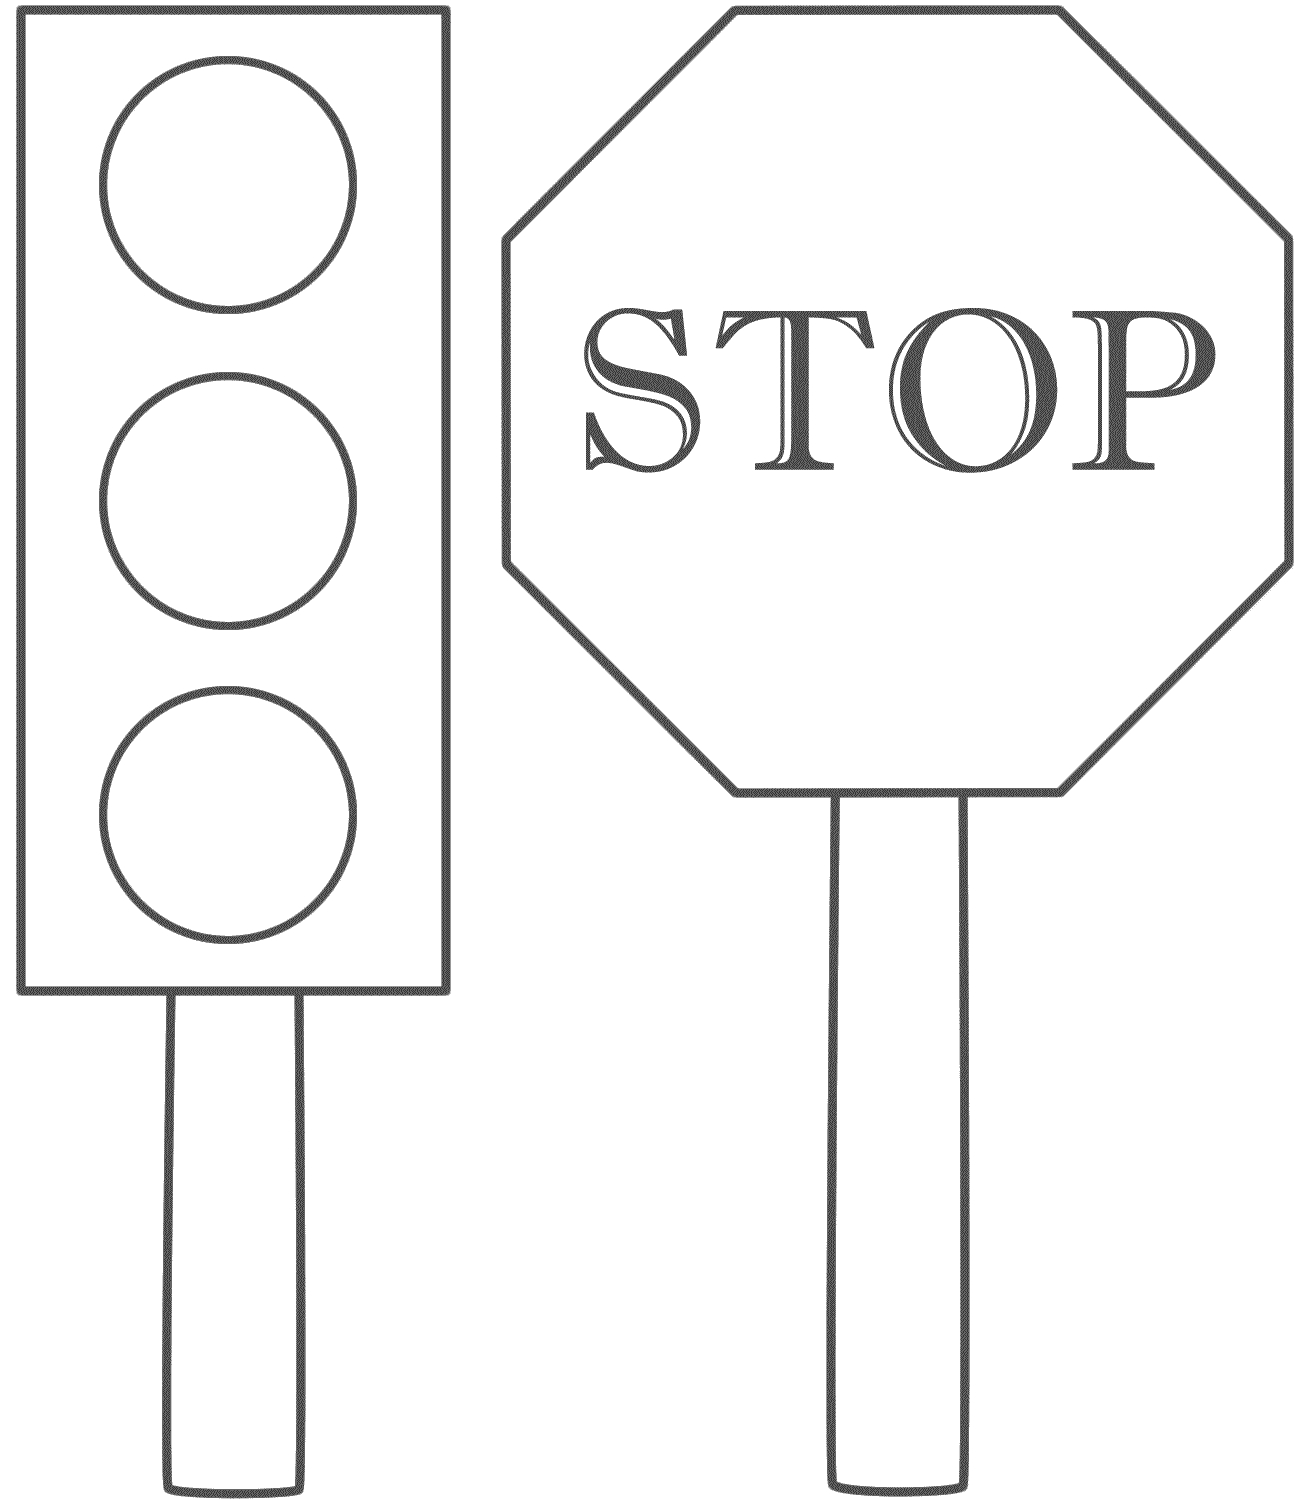 Stoplightcoloringpage Traffic Light And Stop Sign Coloring Pages - Free Printable Stop Sign To Color